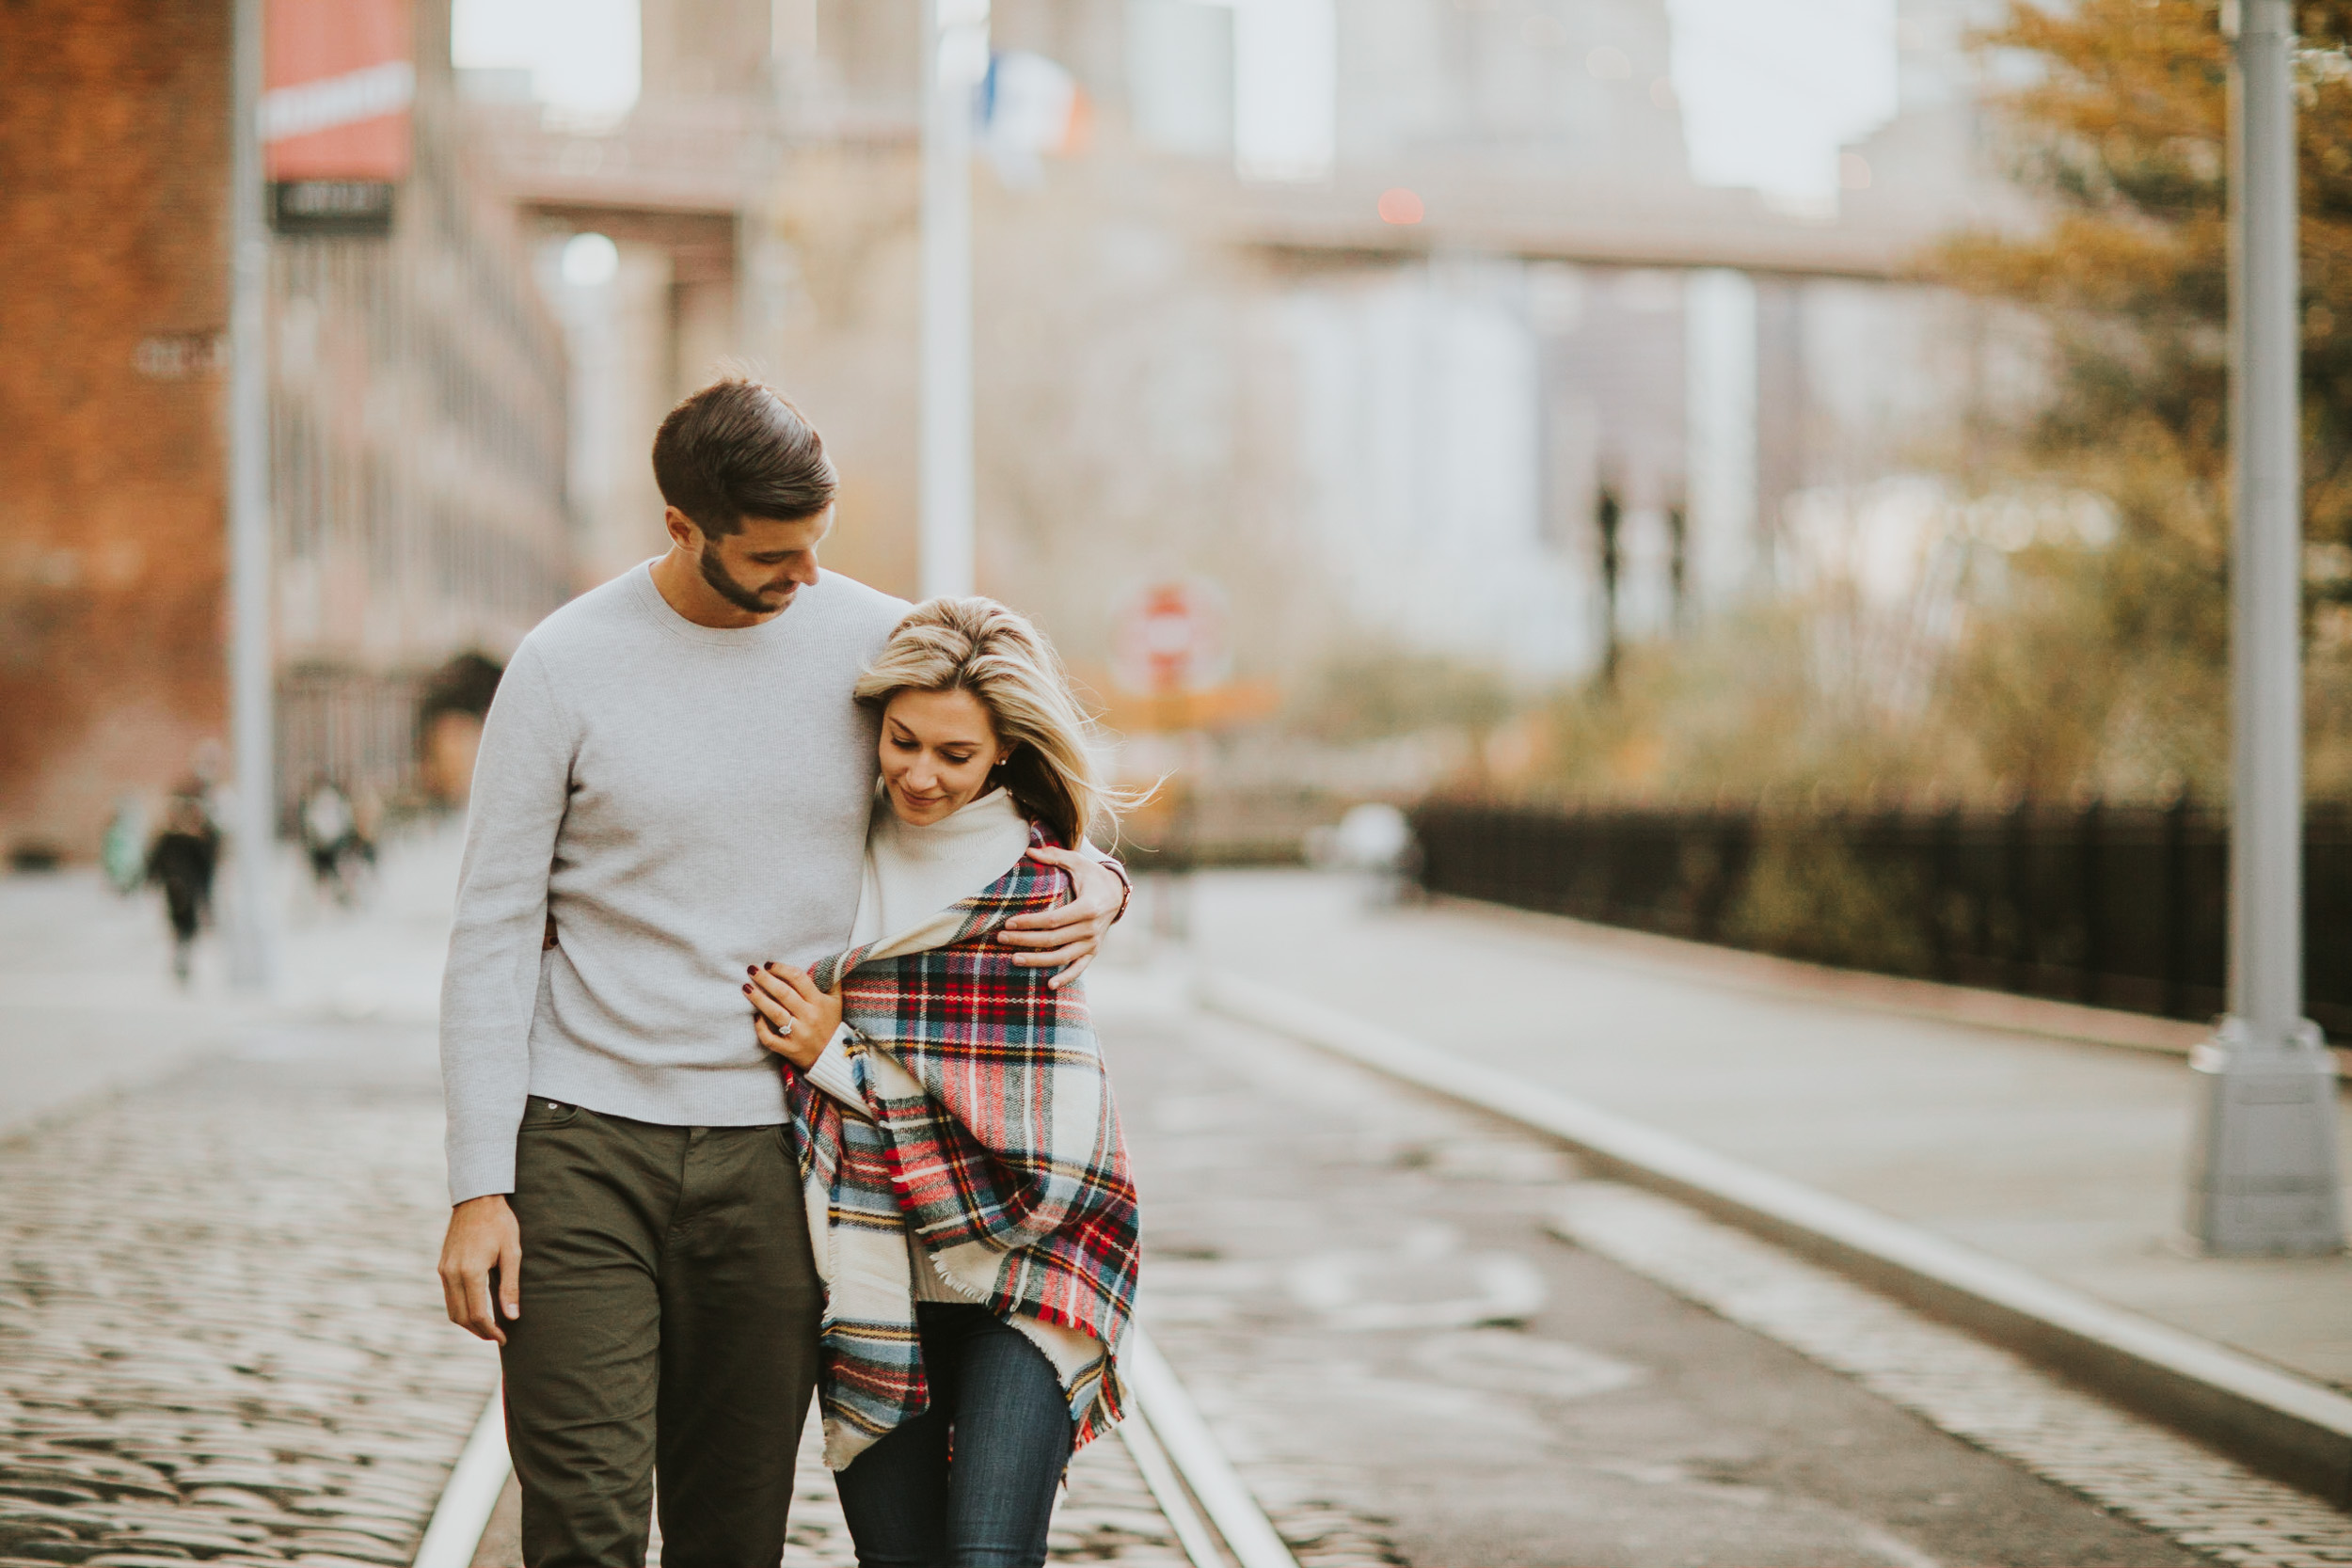 Colorful Fall NYC Engagement Session_Polly C Photography 1721155806.jpg